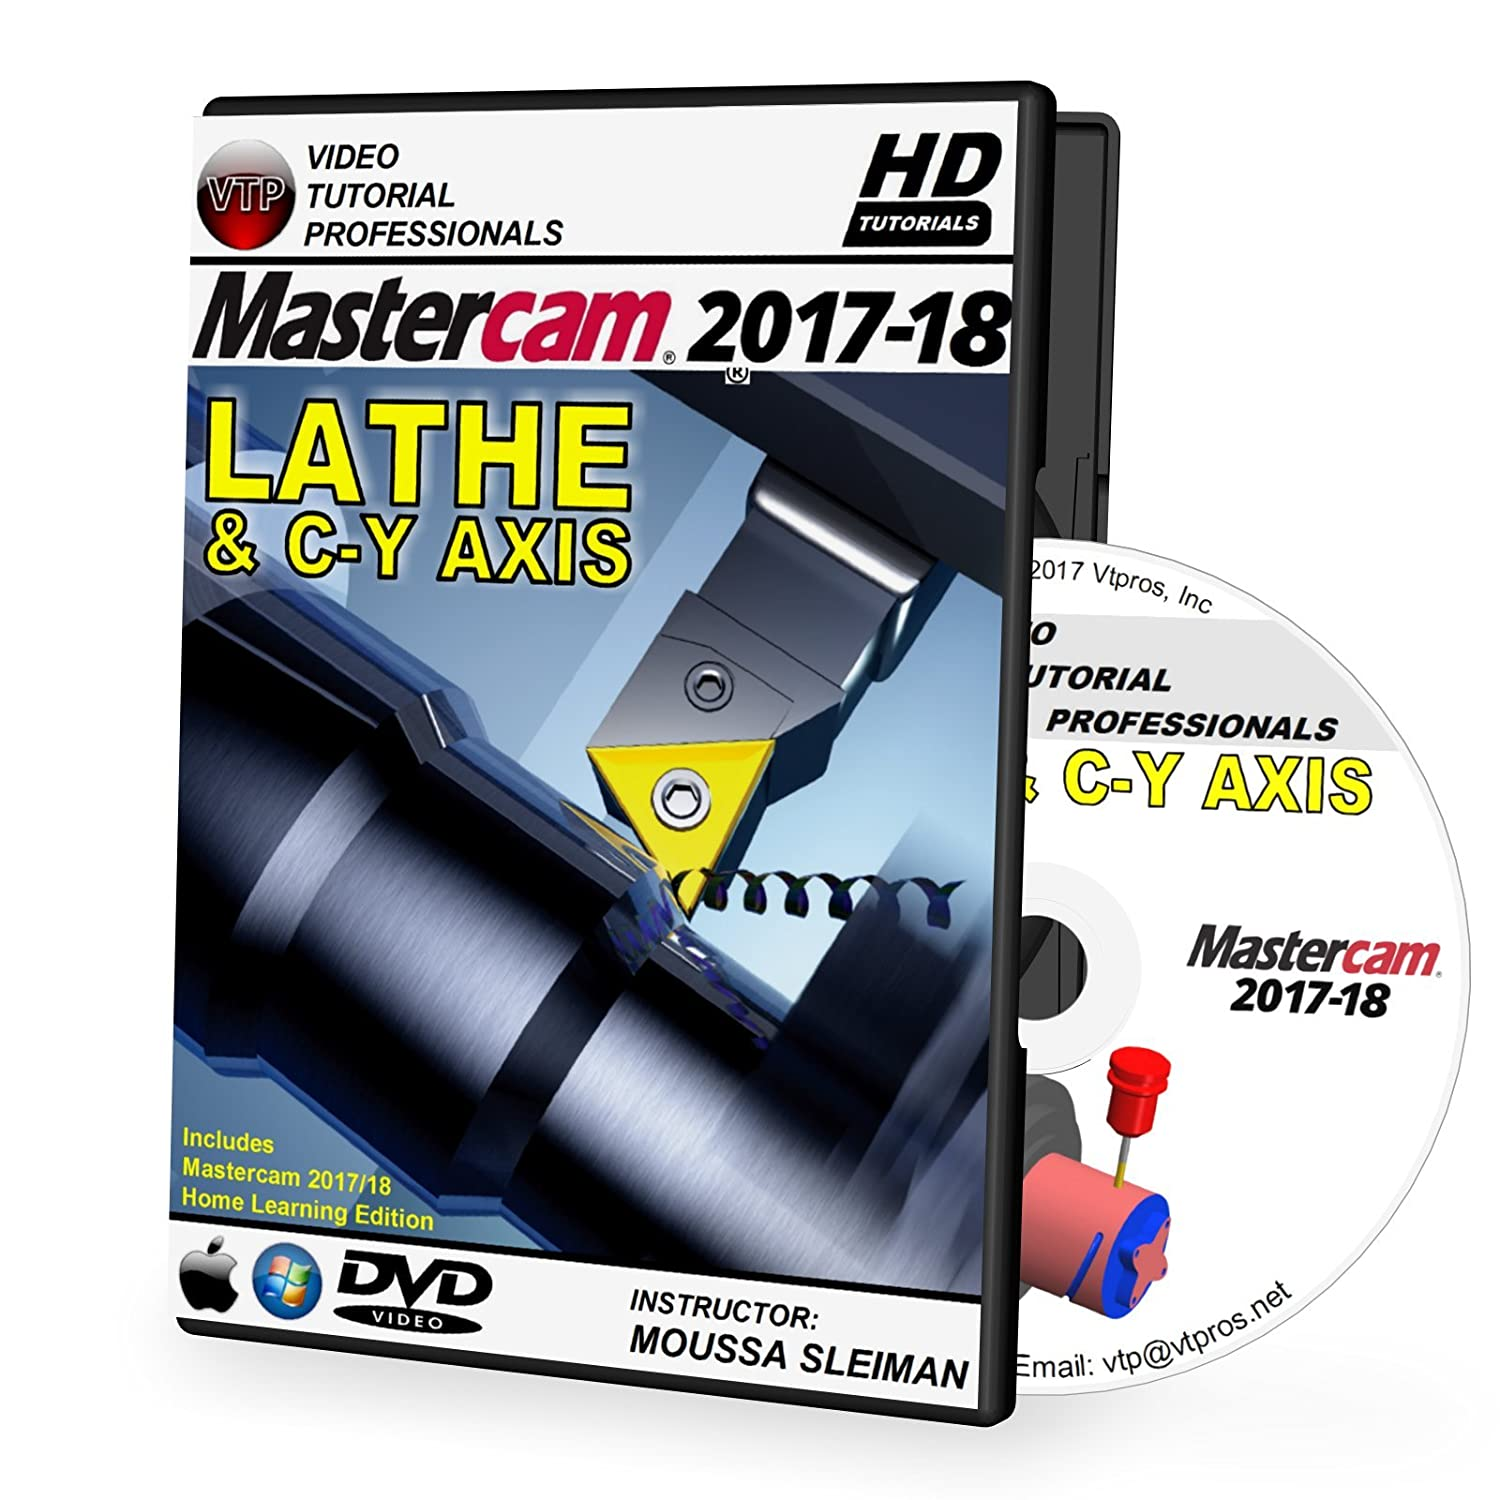 Mastercam 2017-2018 LATHE & C-Y AXIS Video Tutorial HD DVD